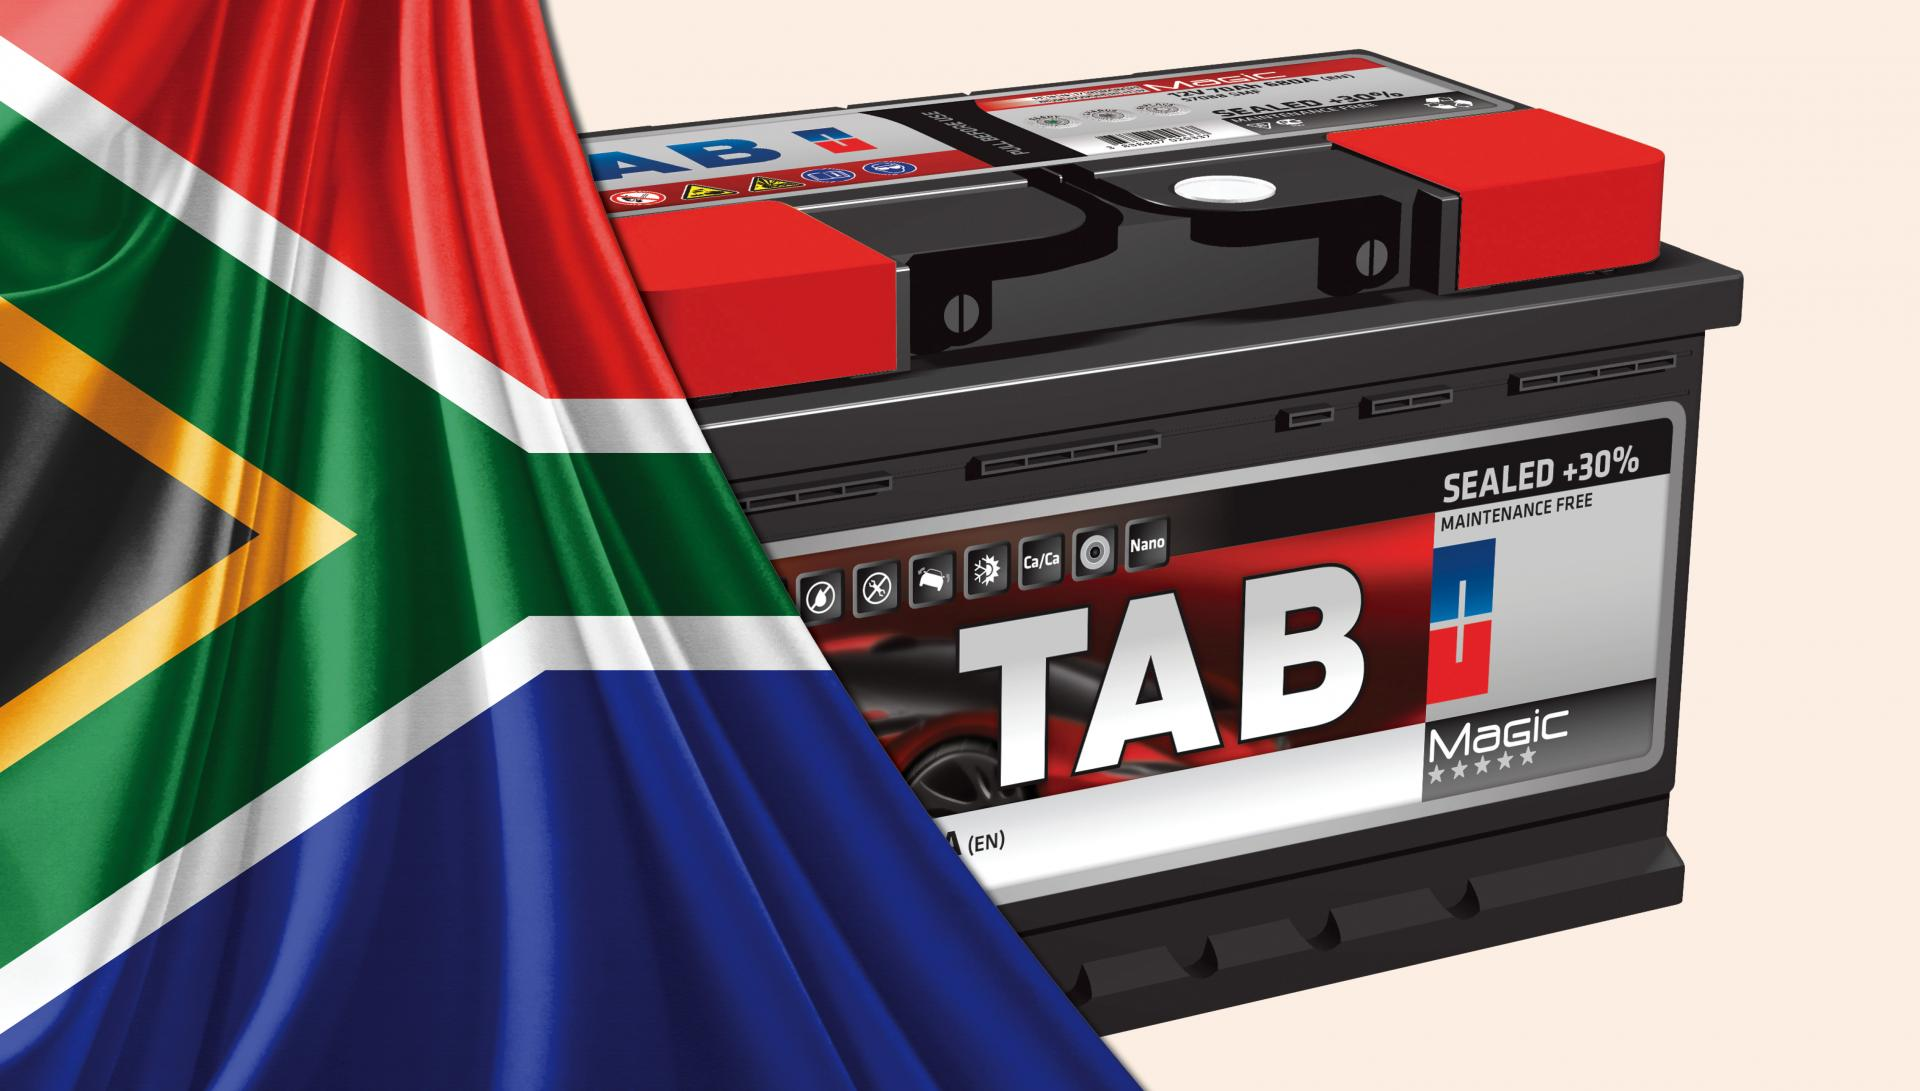 South African Metair wants to acquire Slovenian TAB